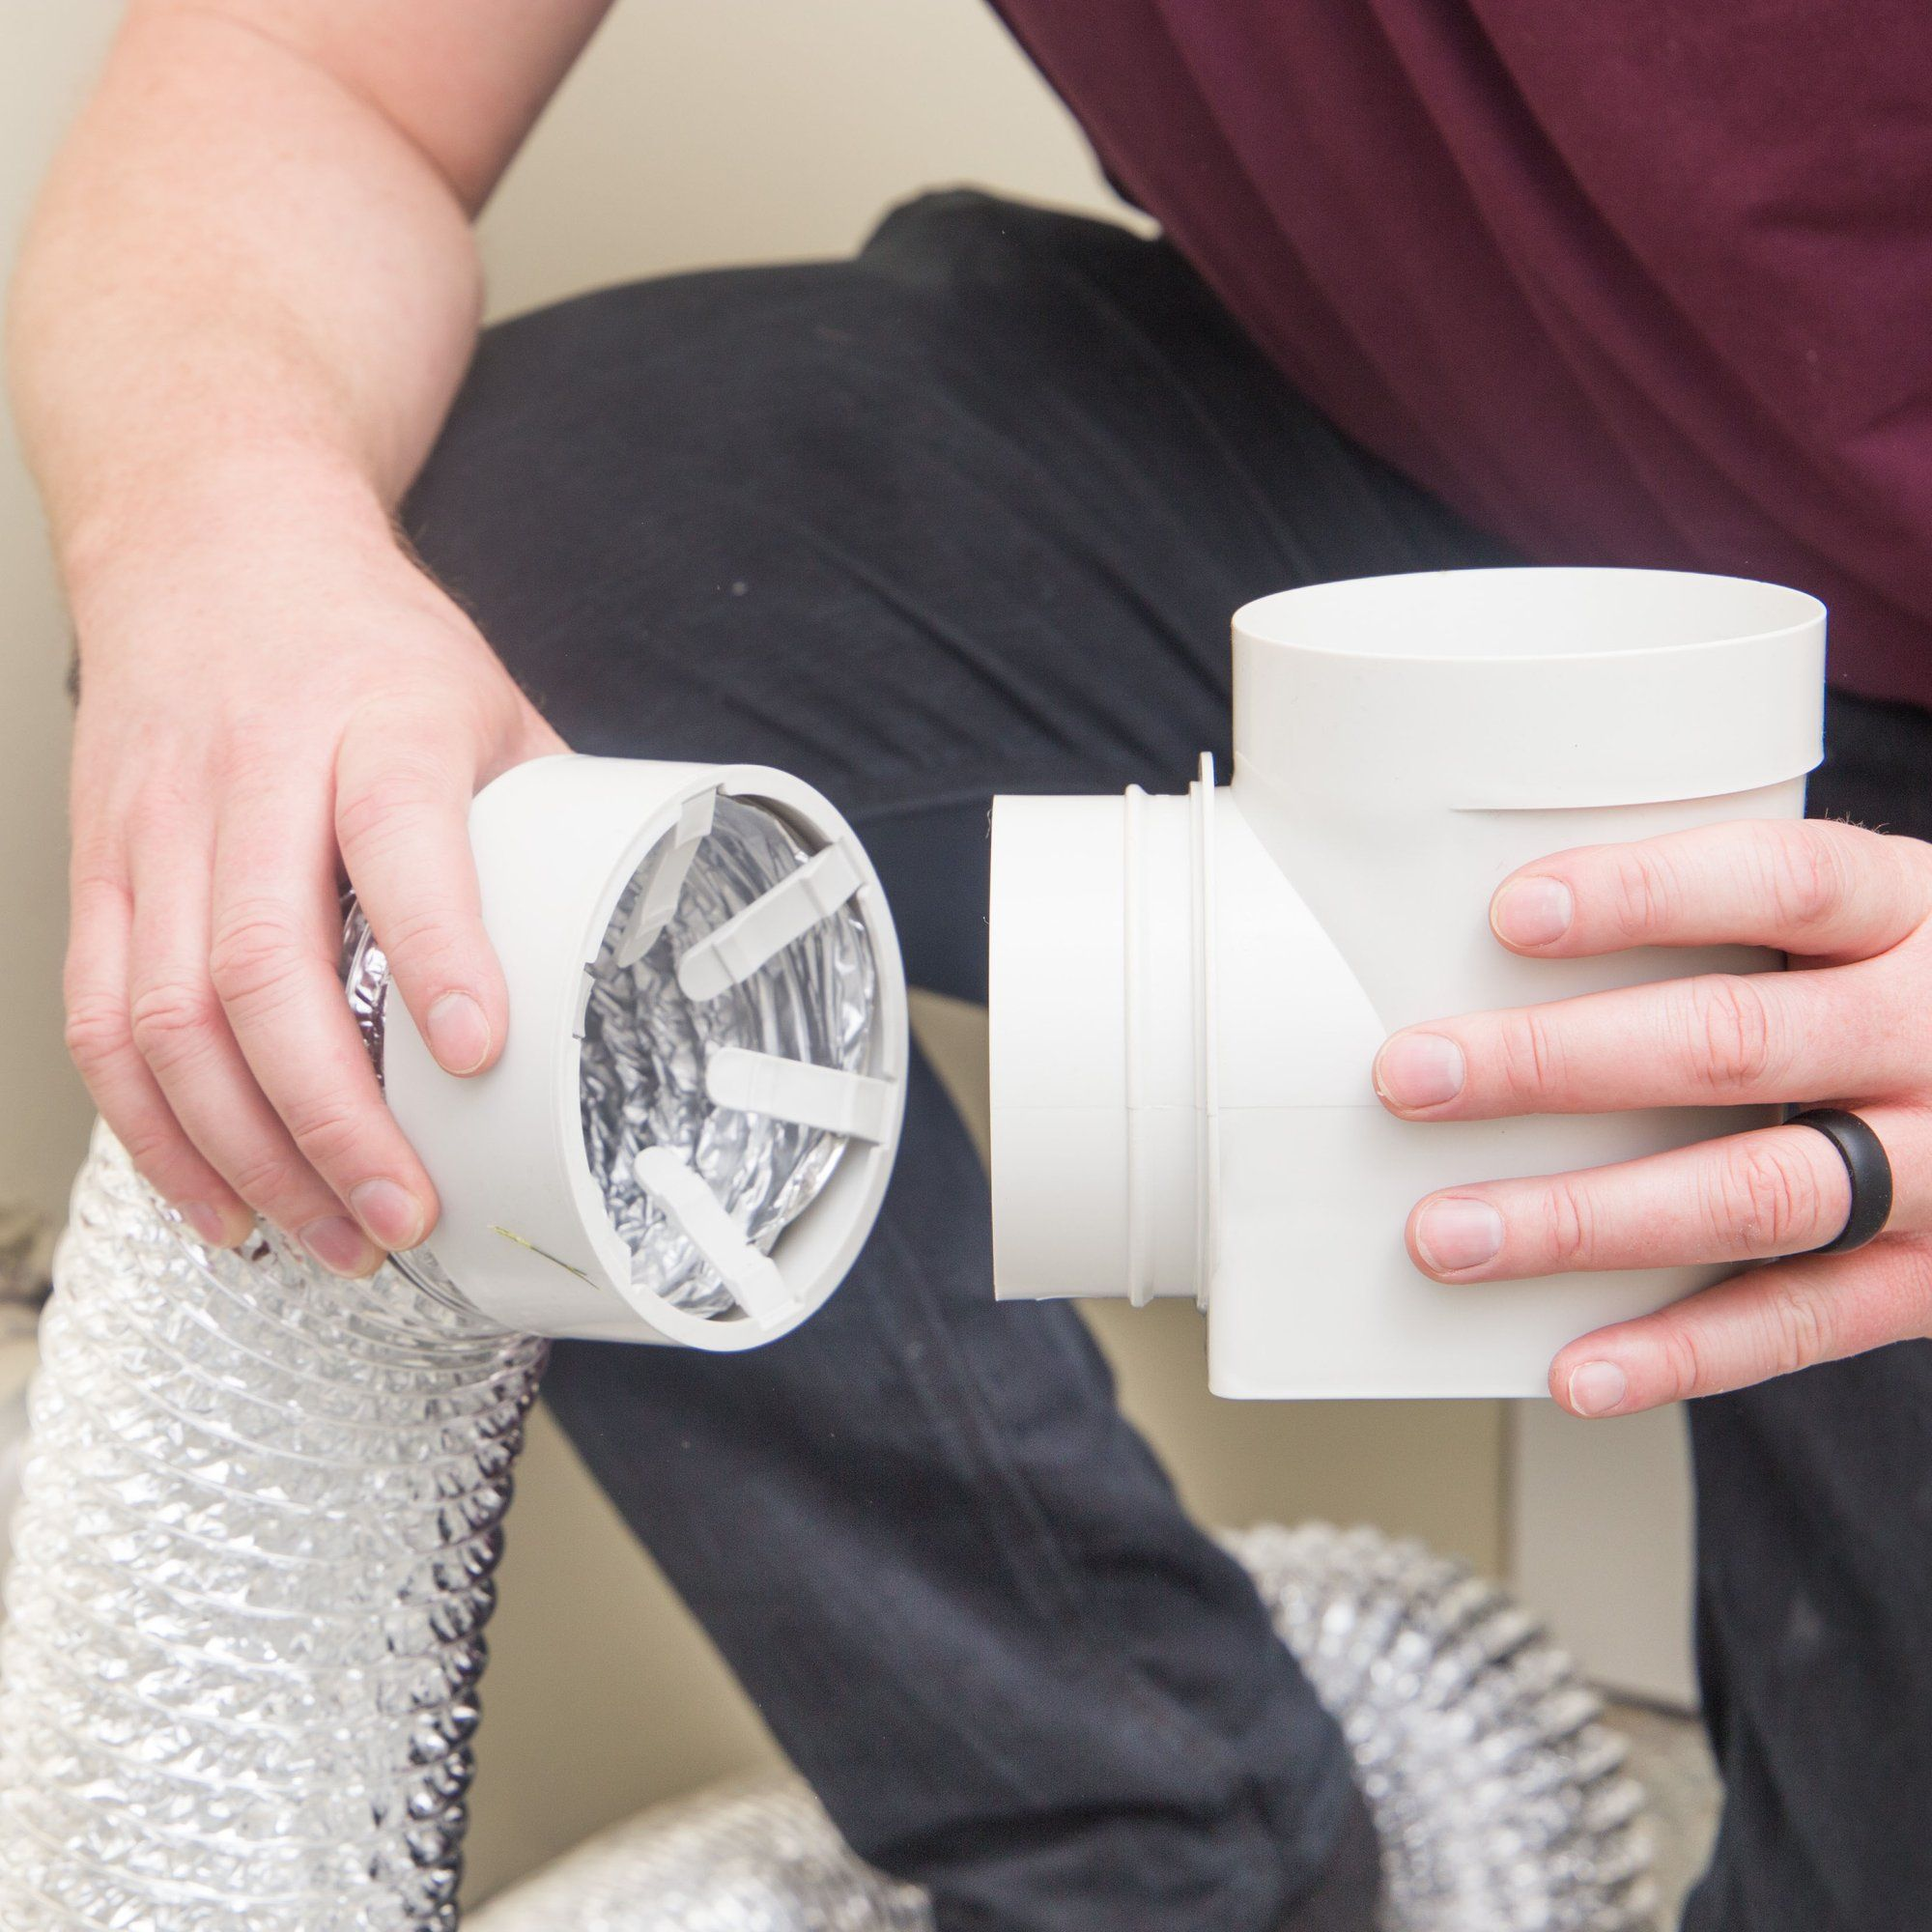 Ziggurat Products And Snap To Vent Are The Best And Easiest Way To Install Your Dryer No Hose Clamp Needed No Tools Req Dryer Vent Dryer Hose Dryer Vent Hose